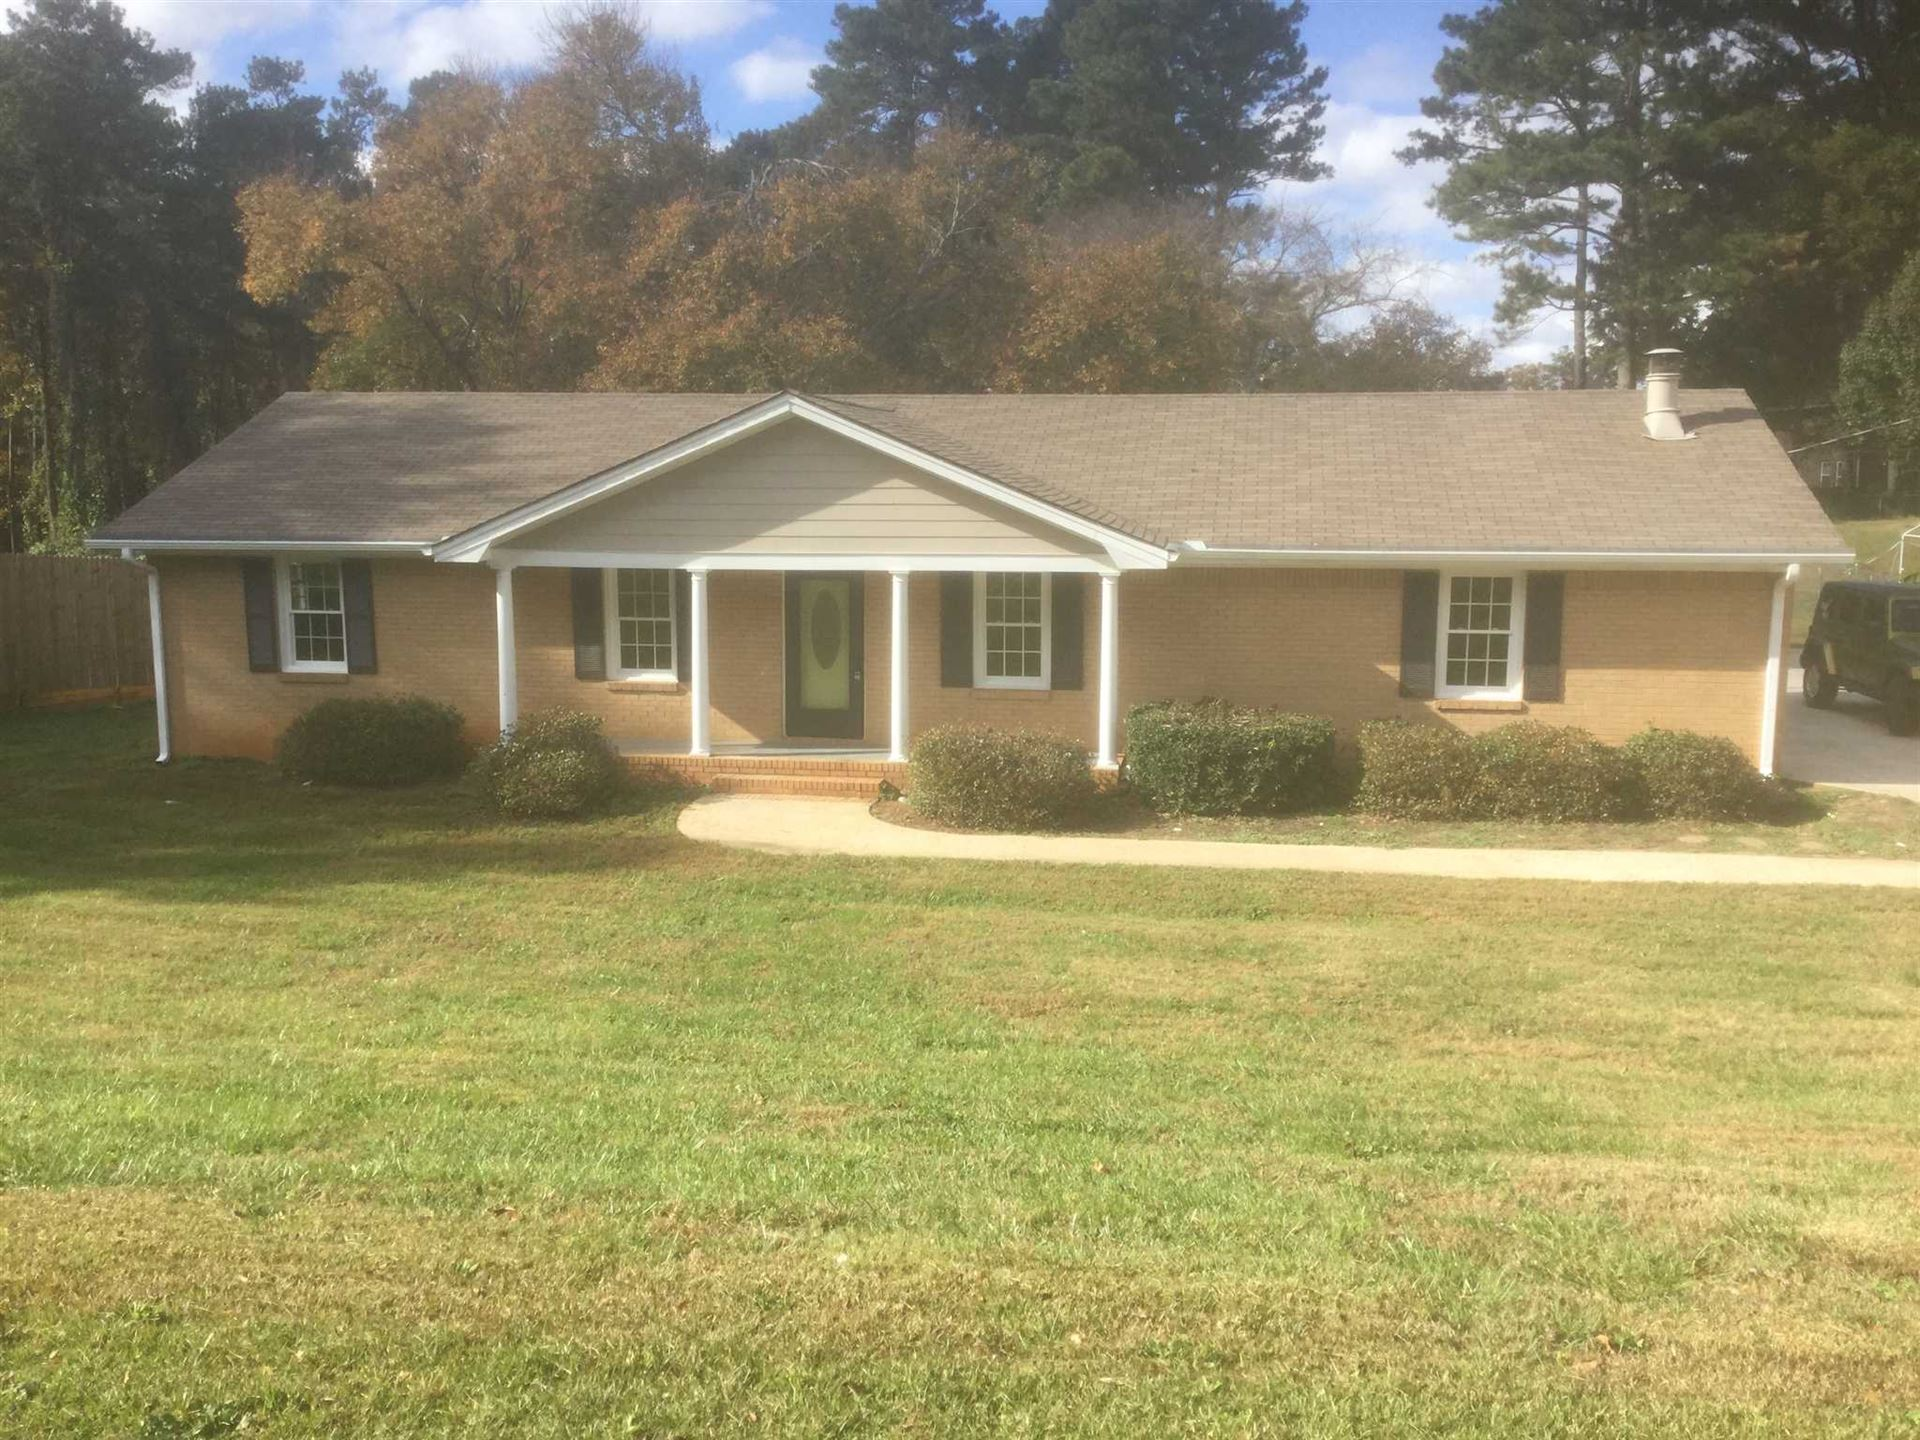 741 Bethesda School Rd, Lawrenceville, GA 30044 - MLS#: 8895665